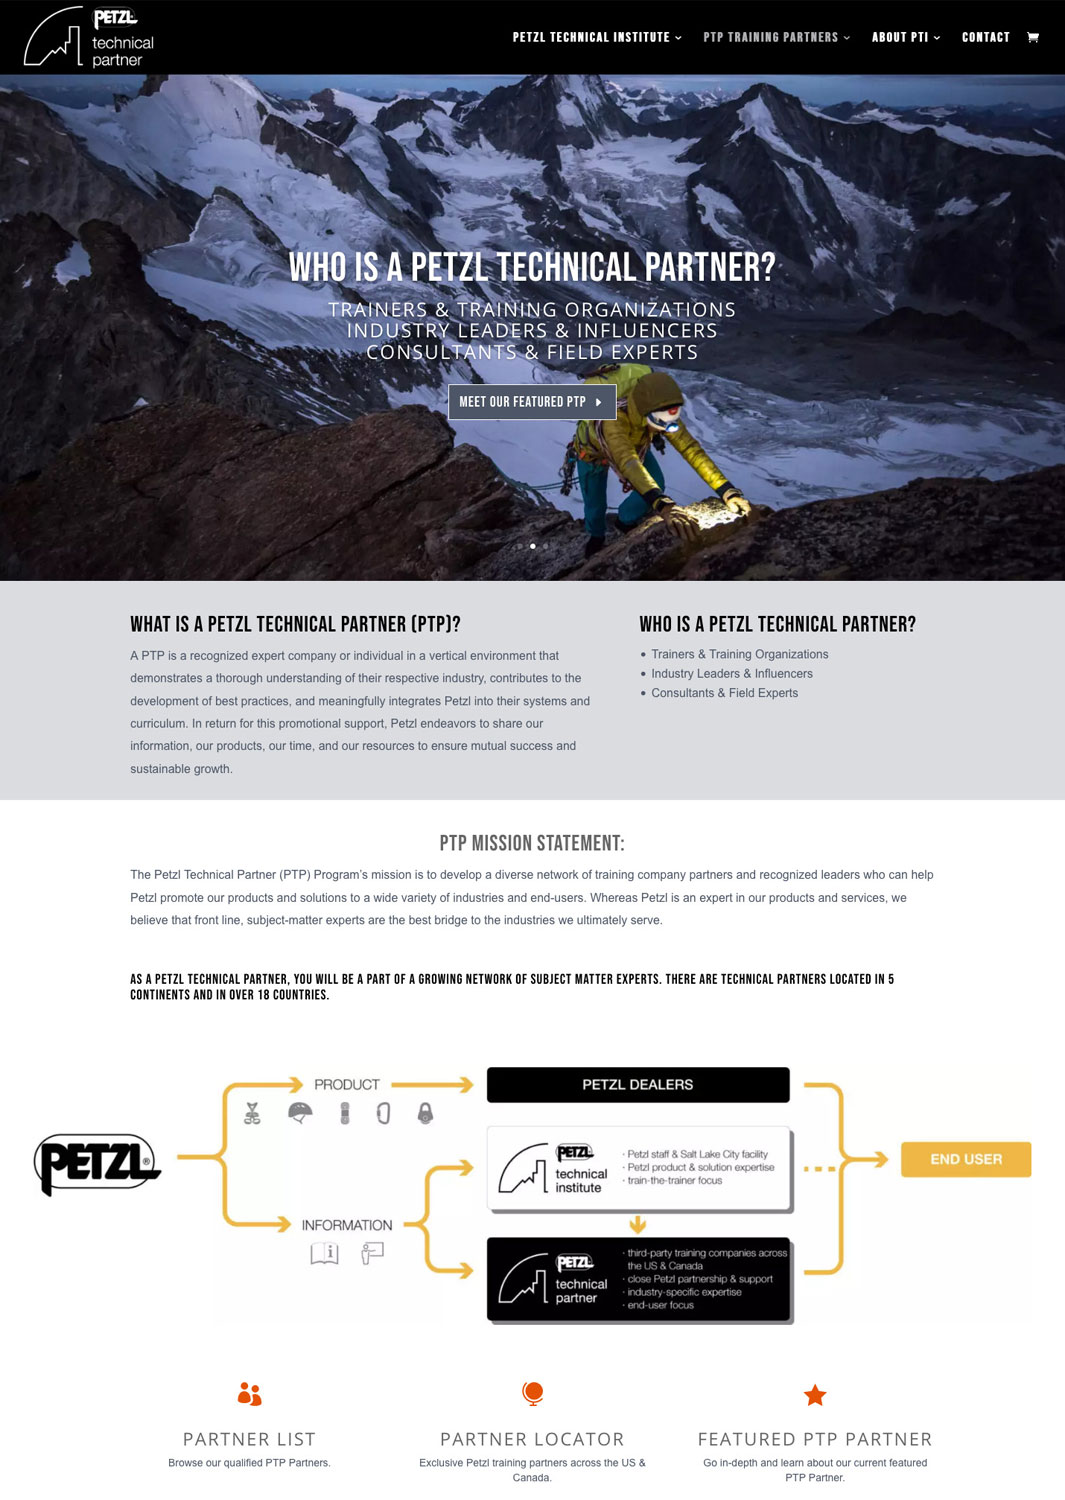 Petzl Technical Institute Website